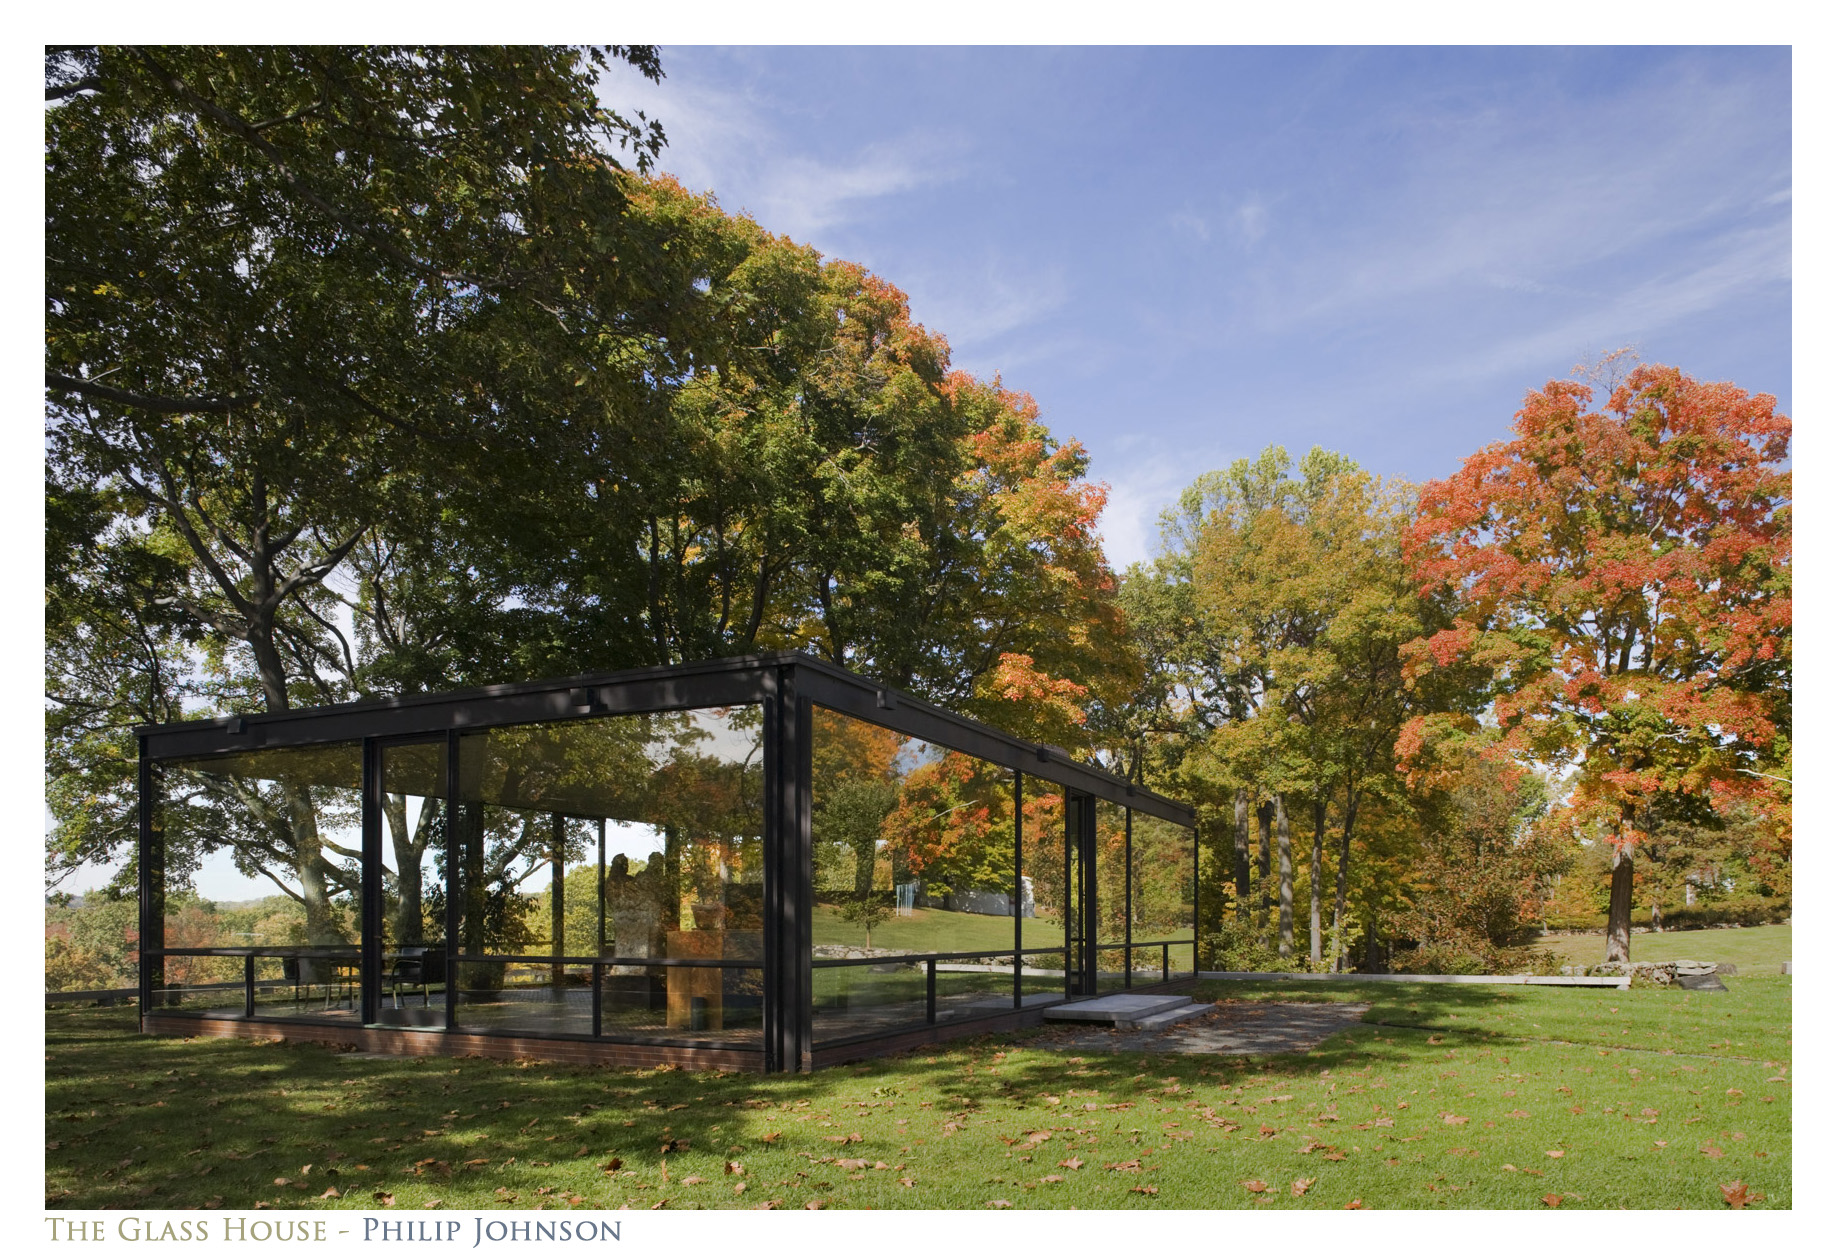 016_Robert-Benson-Photography-Residence-Connecticut-Magazine-Philip-Johnson-Glass-House-01.JPG